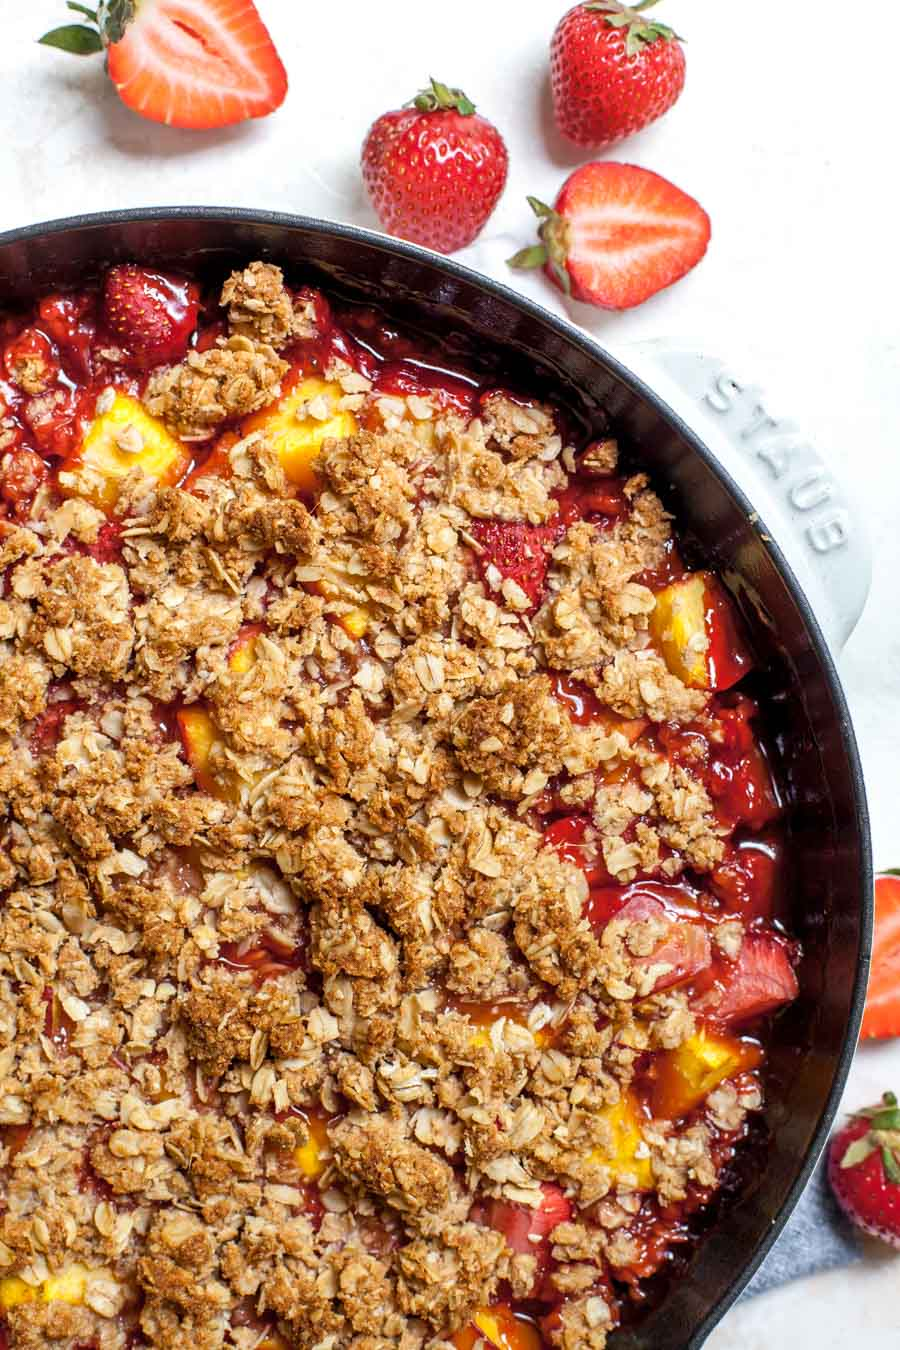 Gluten free fruit crisp with strawberries and nectarines